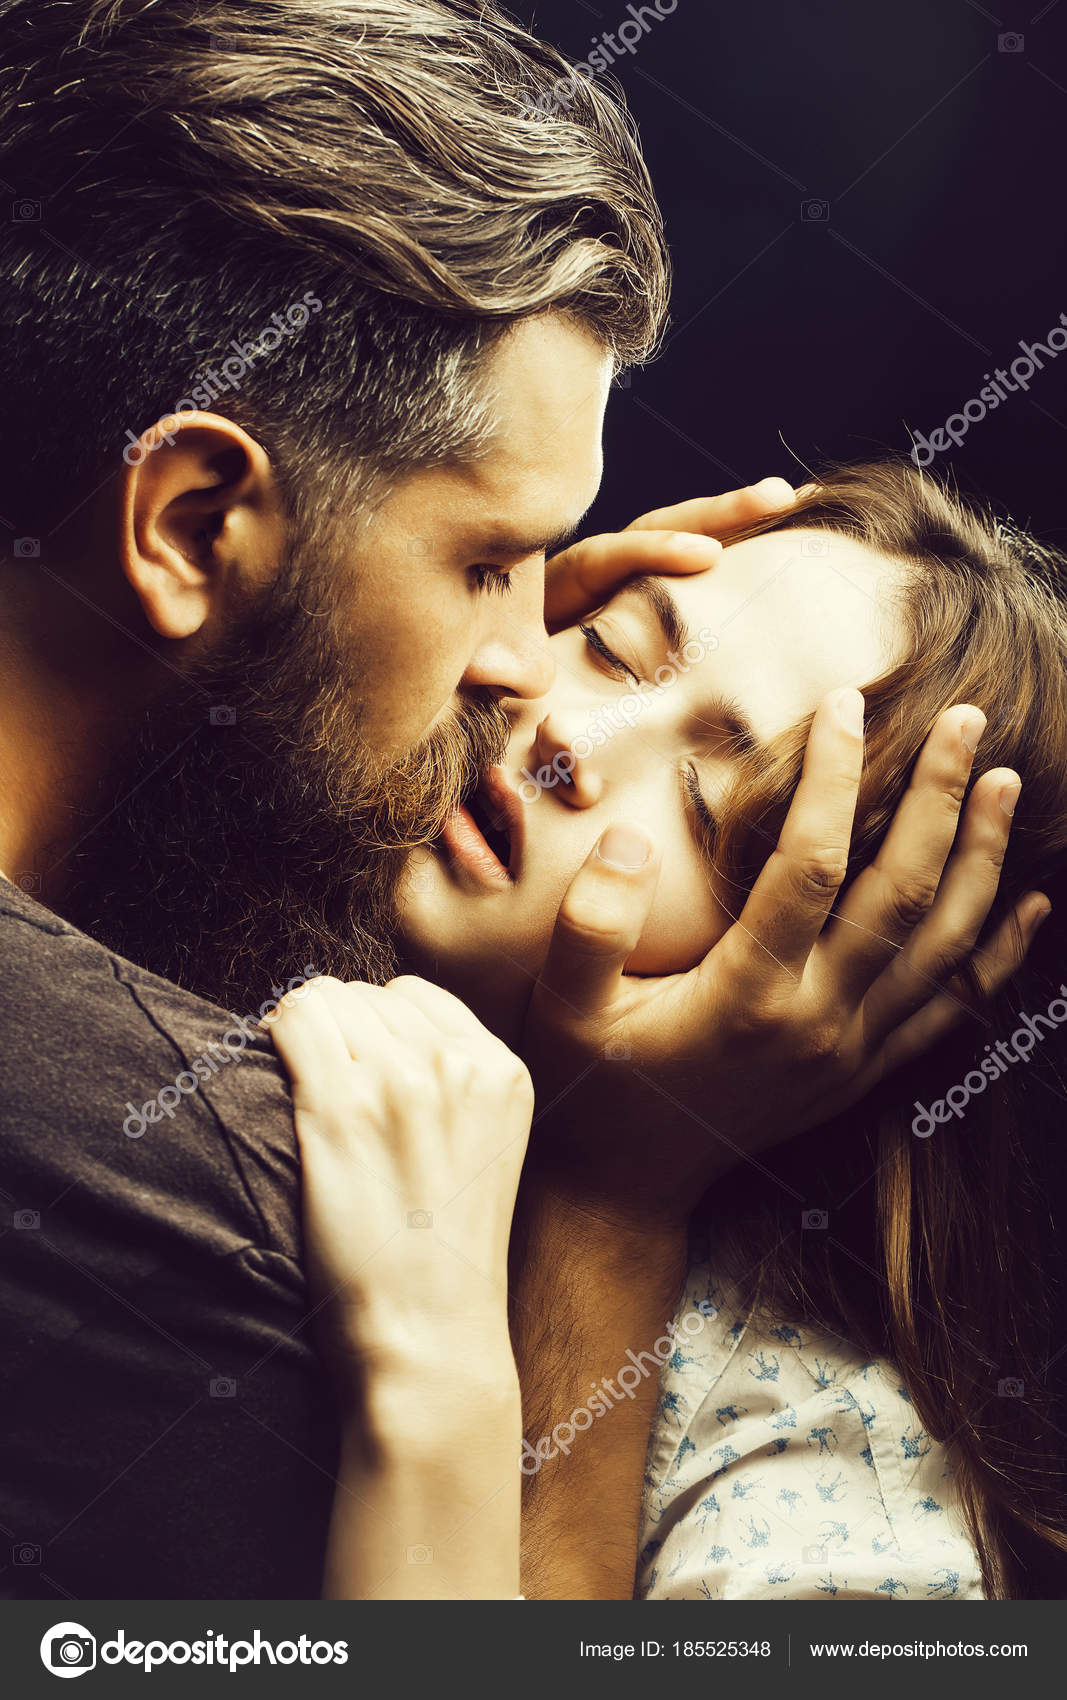 Sexy love women and men kissing on the lips